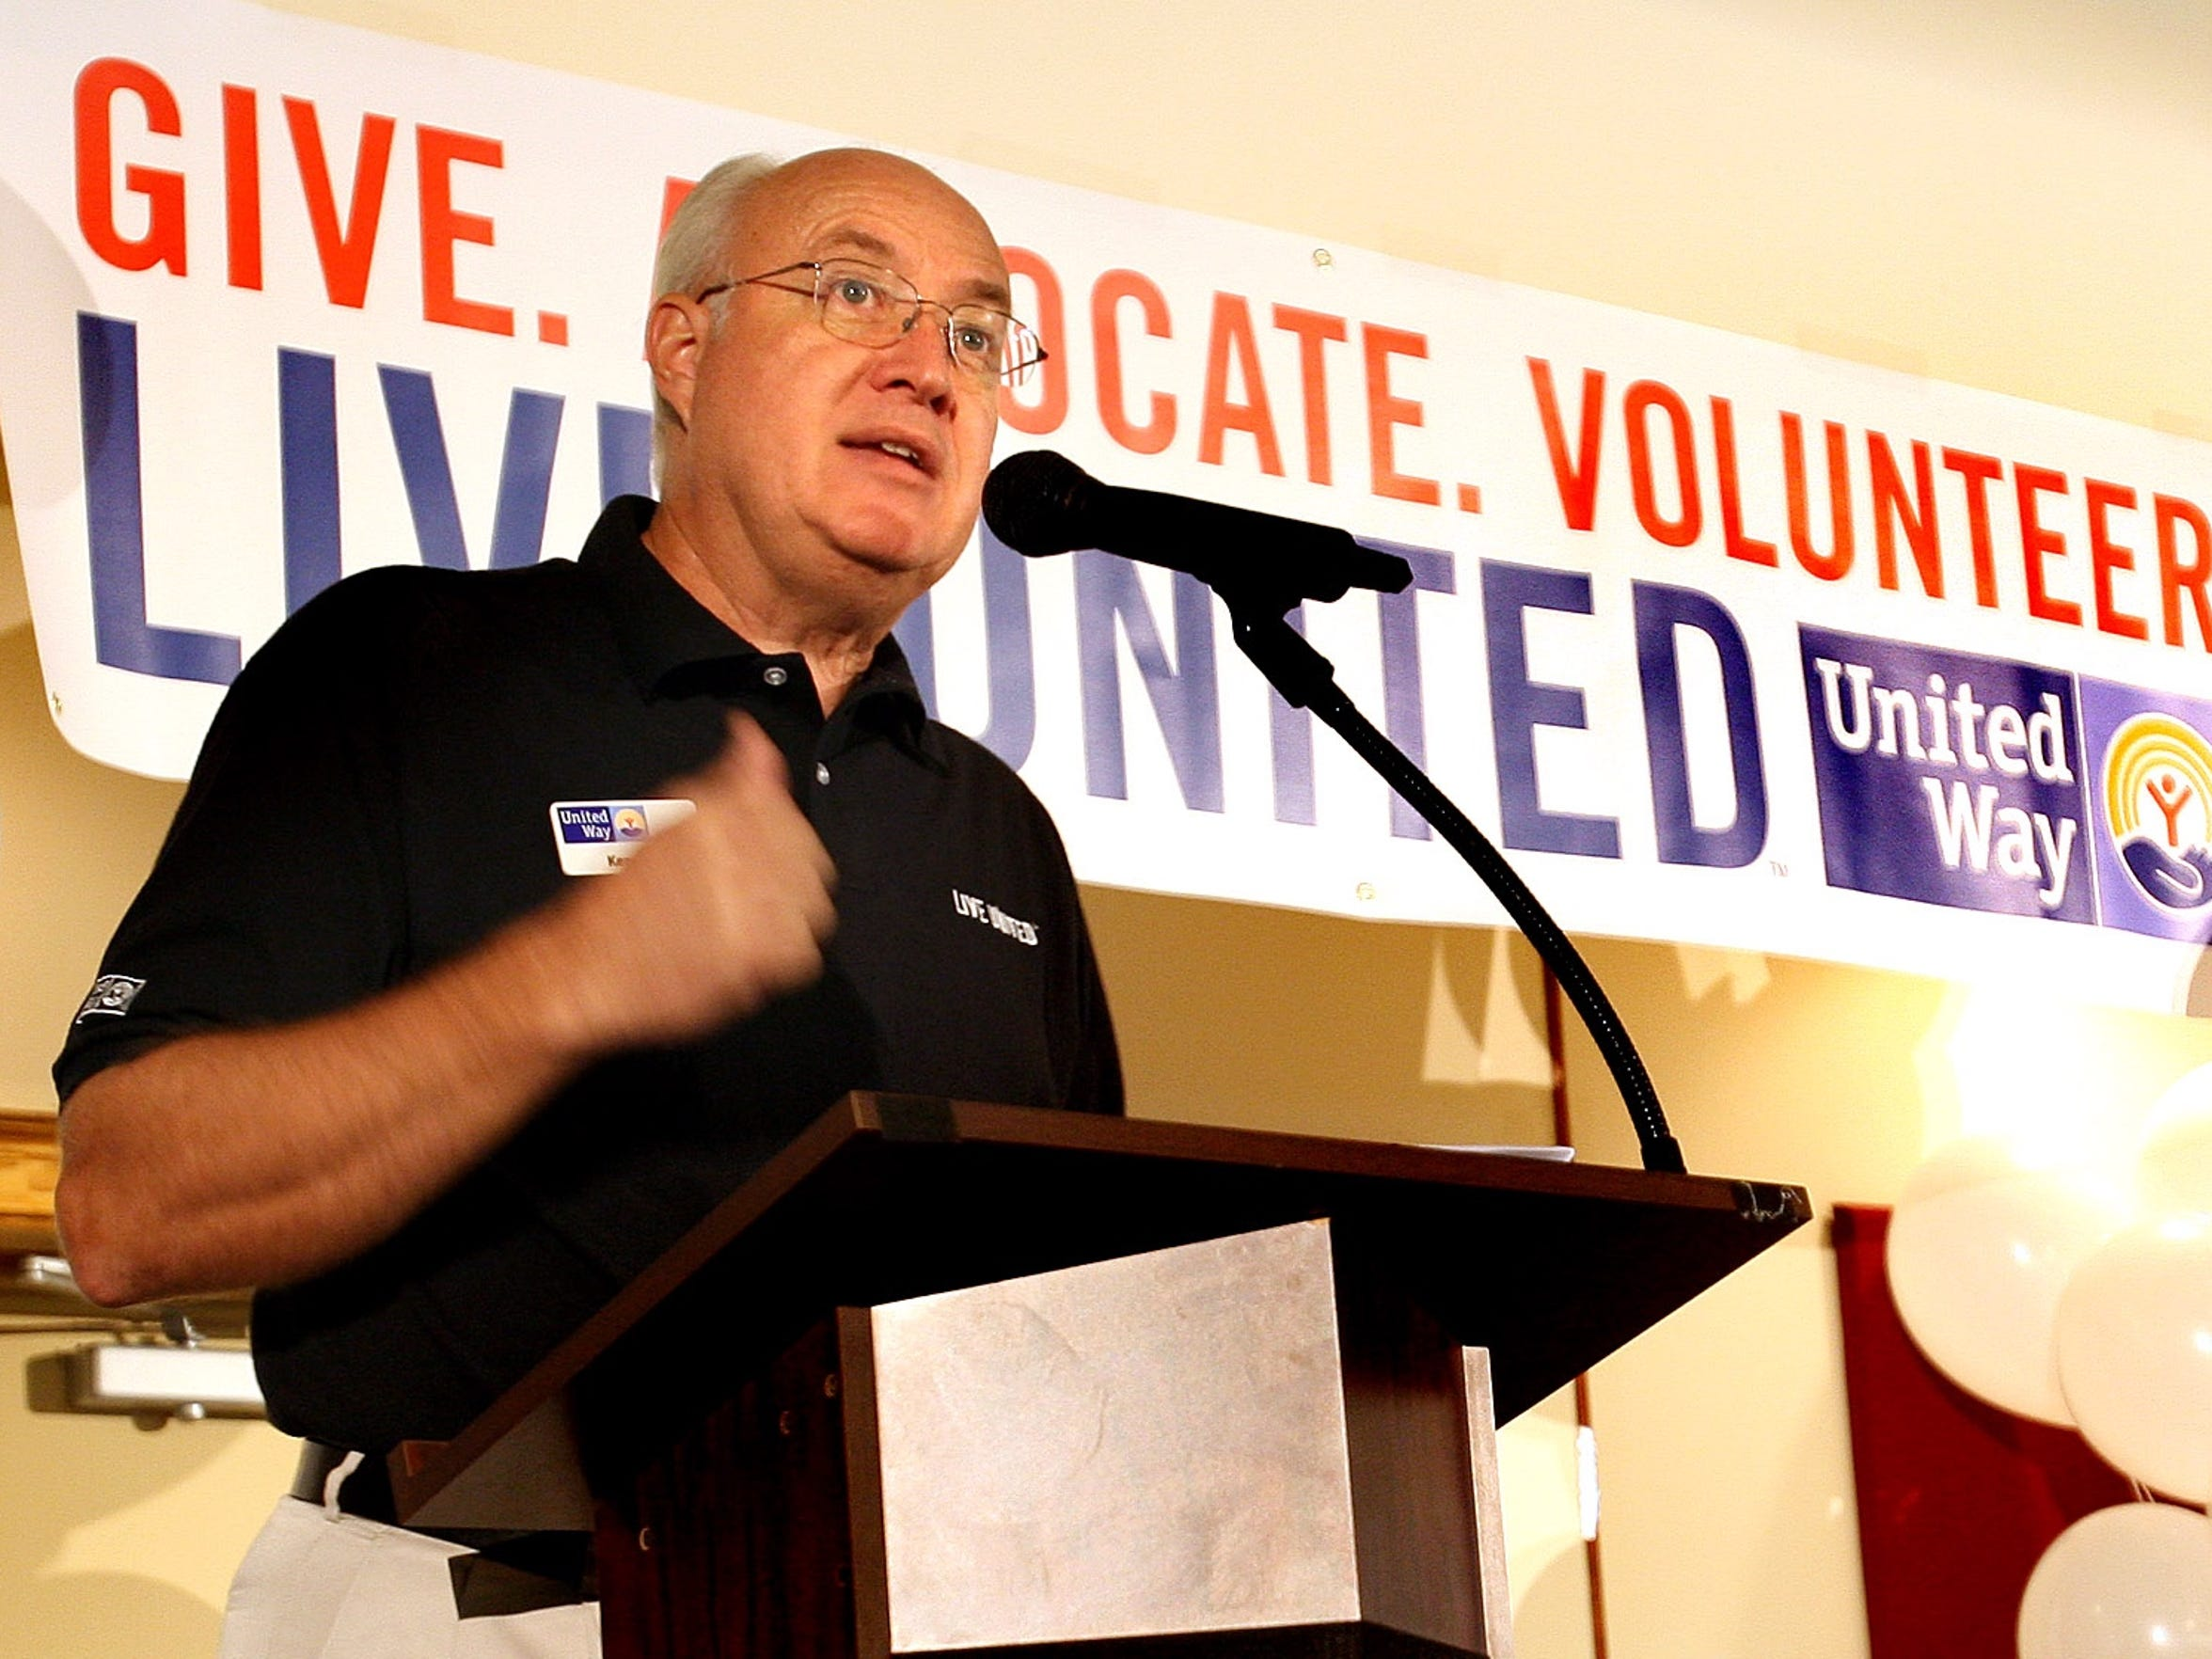 Ken Armstrong, former president of United Way of the